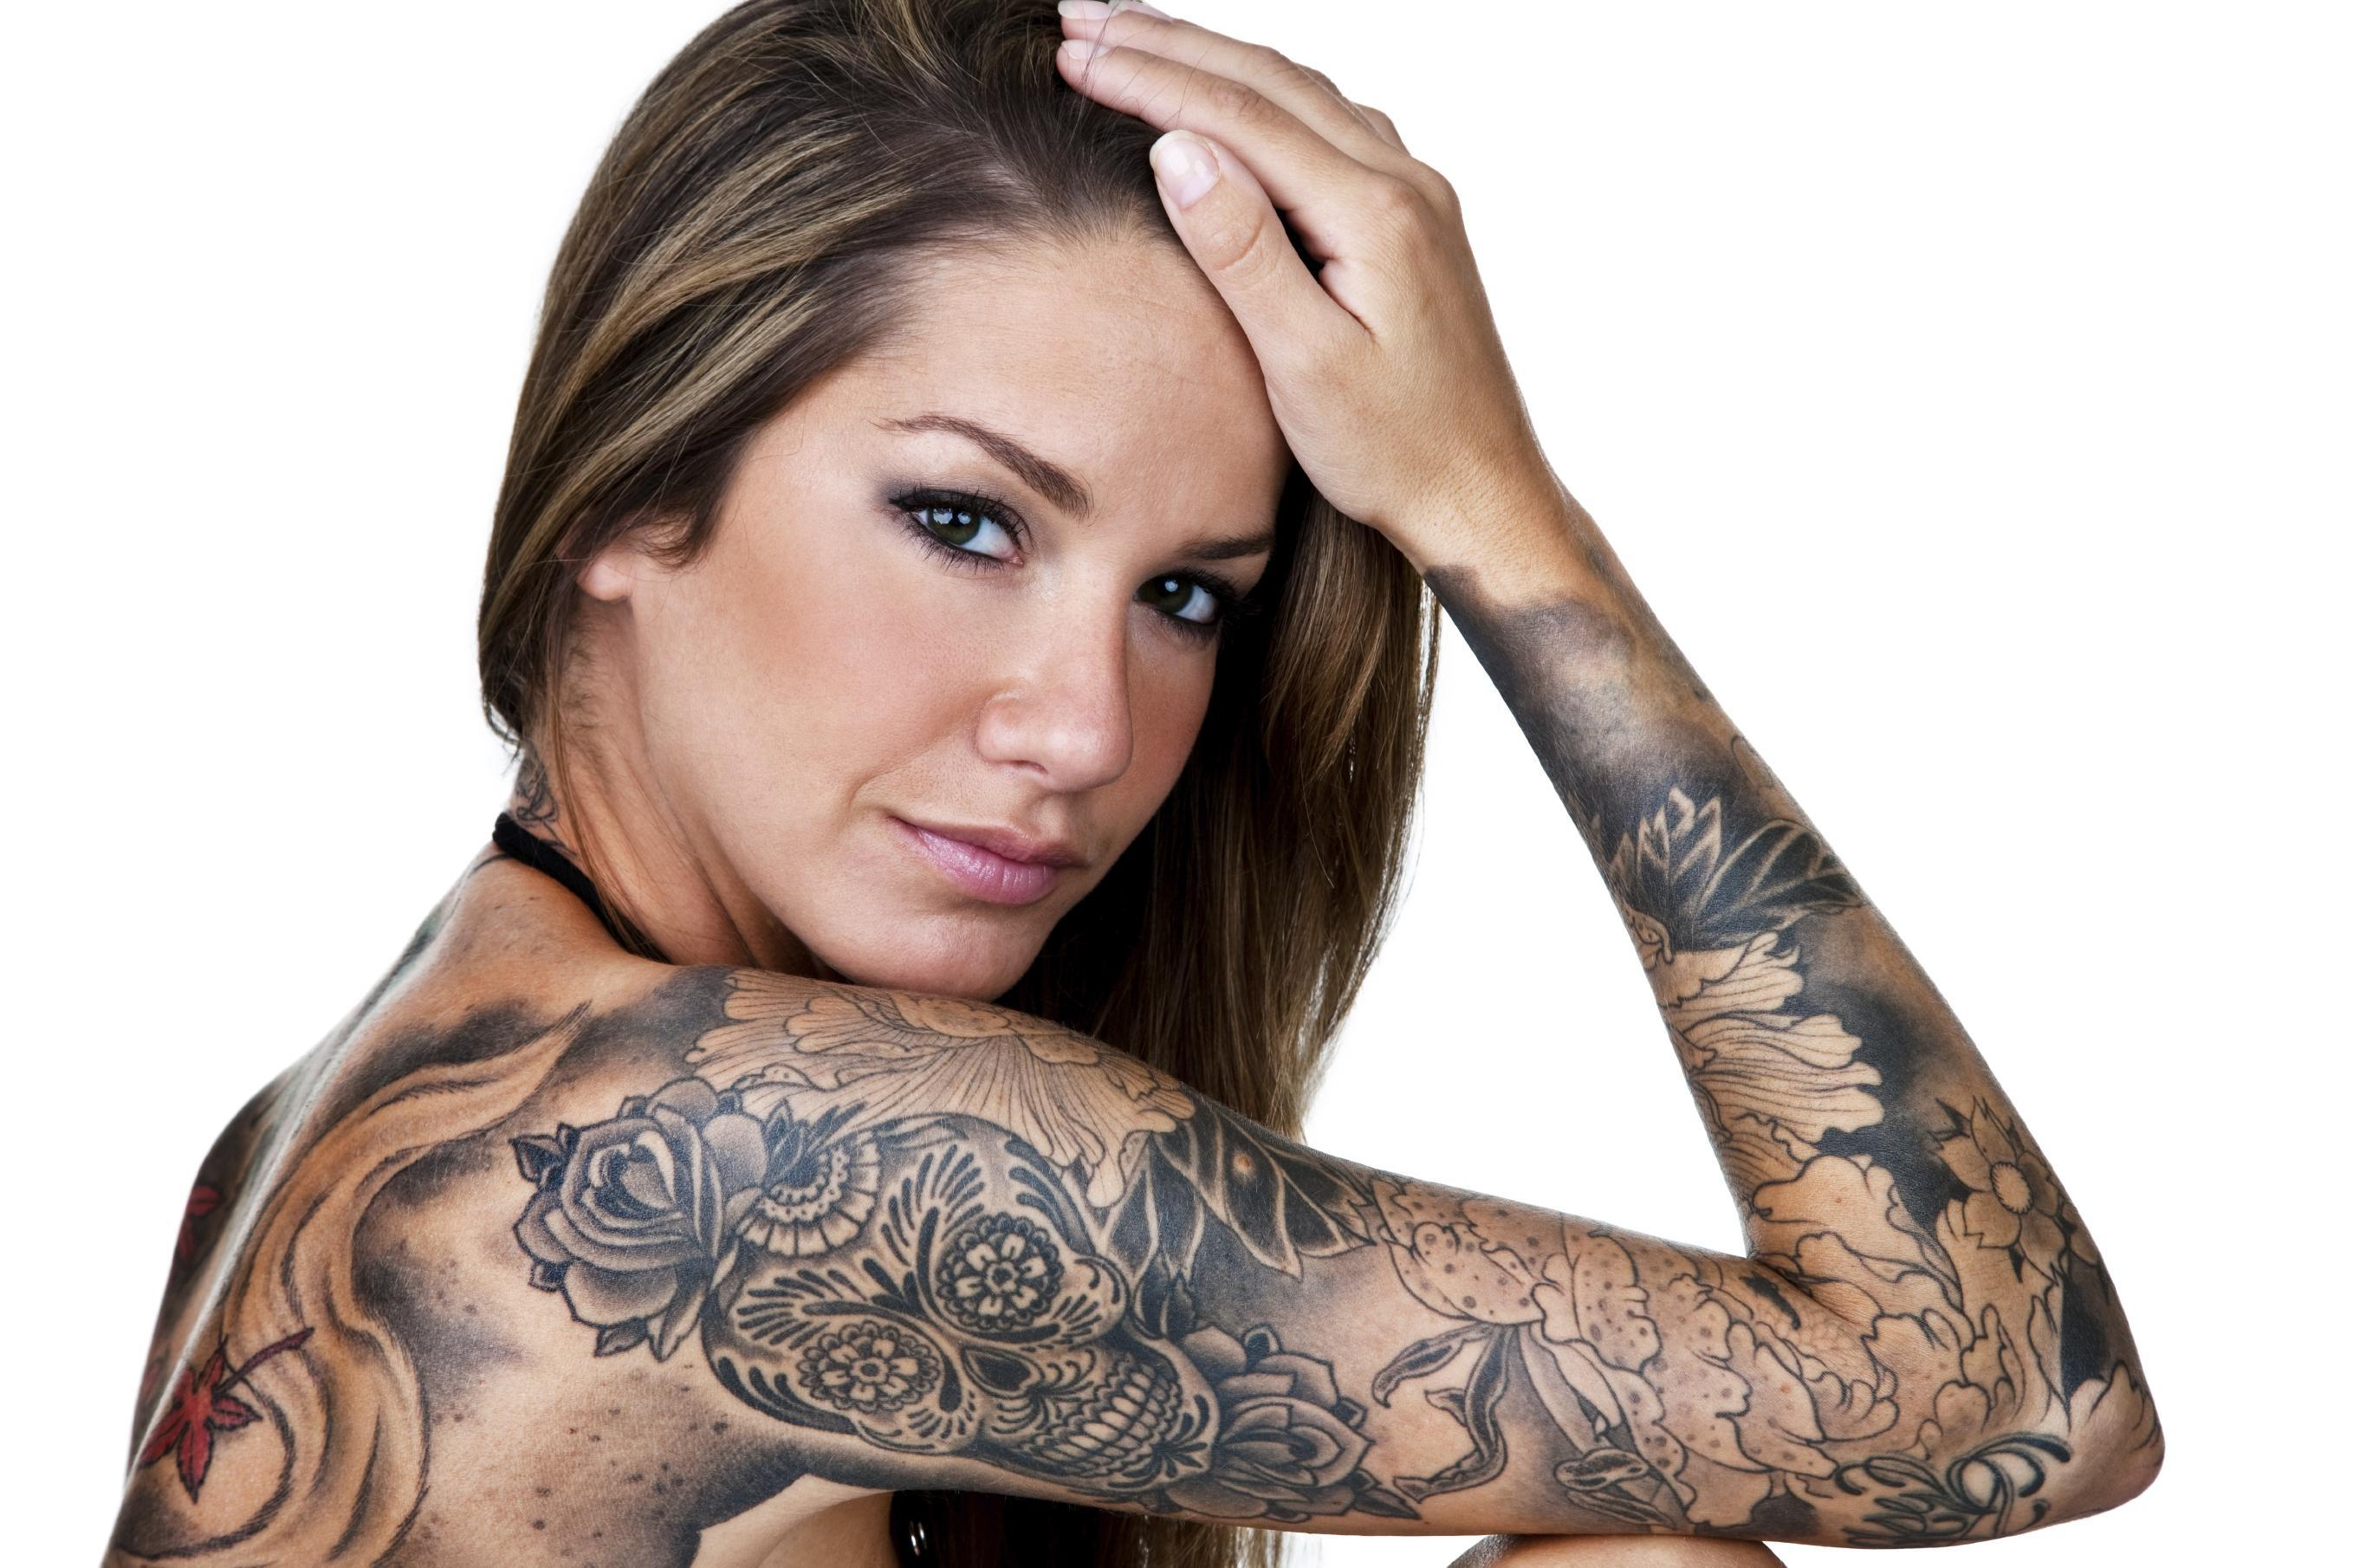 Girl Beautiful Tattoos Inked Tattoo Ink Woman   Hot Girls Wallpaper 2716x1810